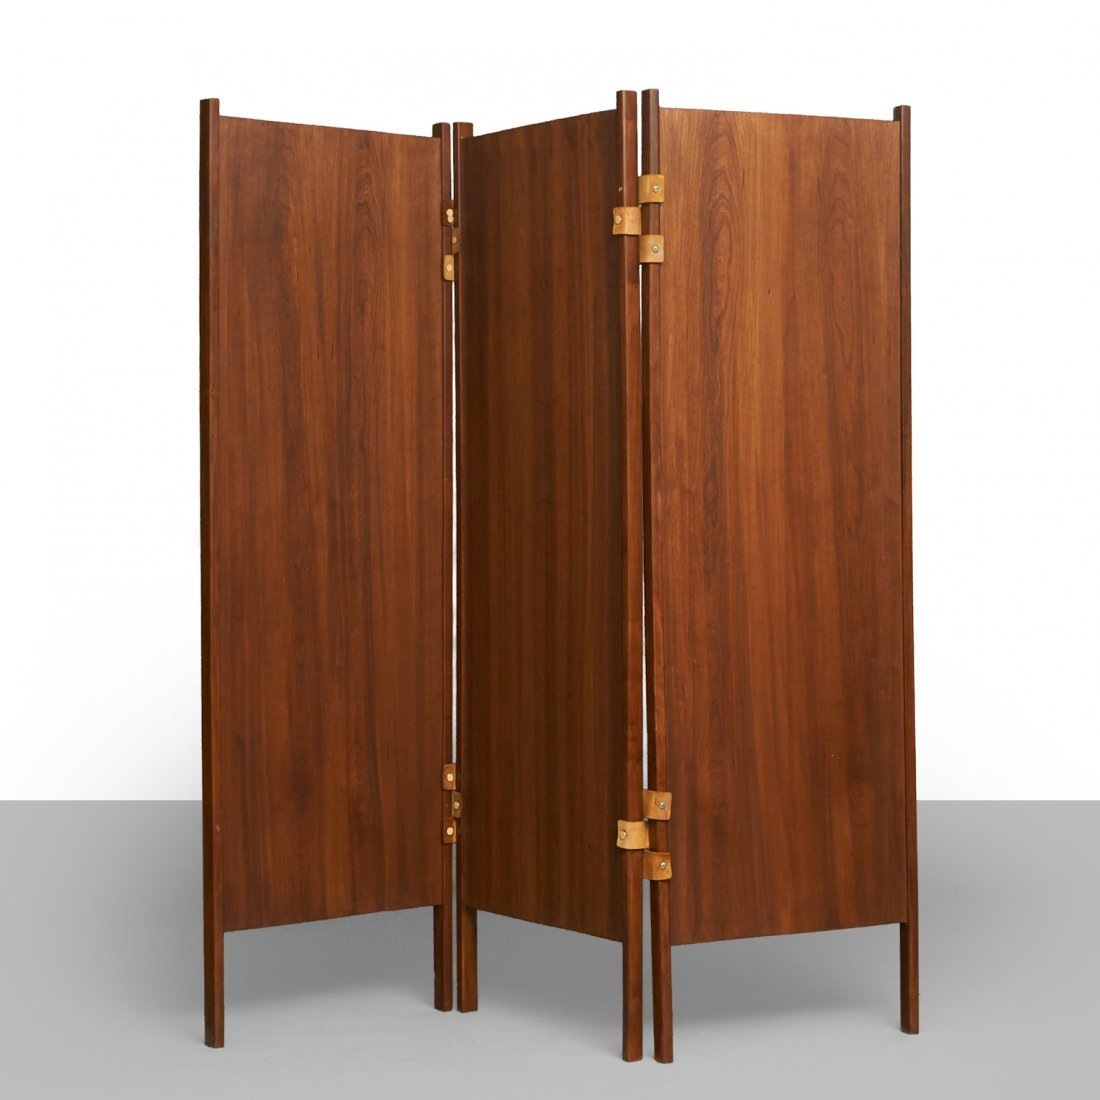 Percival Lafer Style Brazilian Rosewood 3-Panel Screens - 3